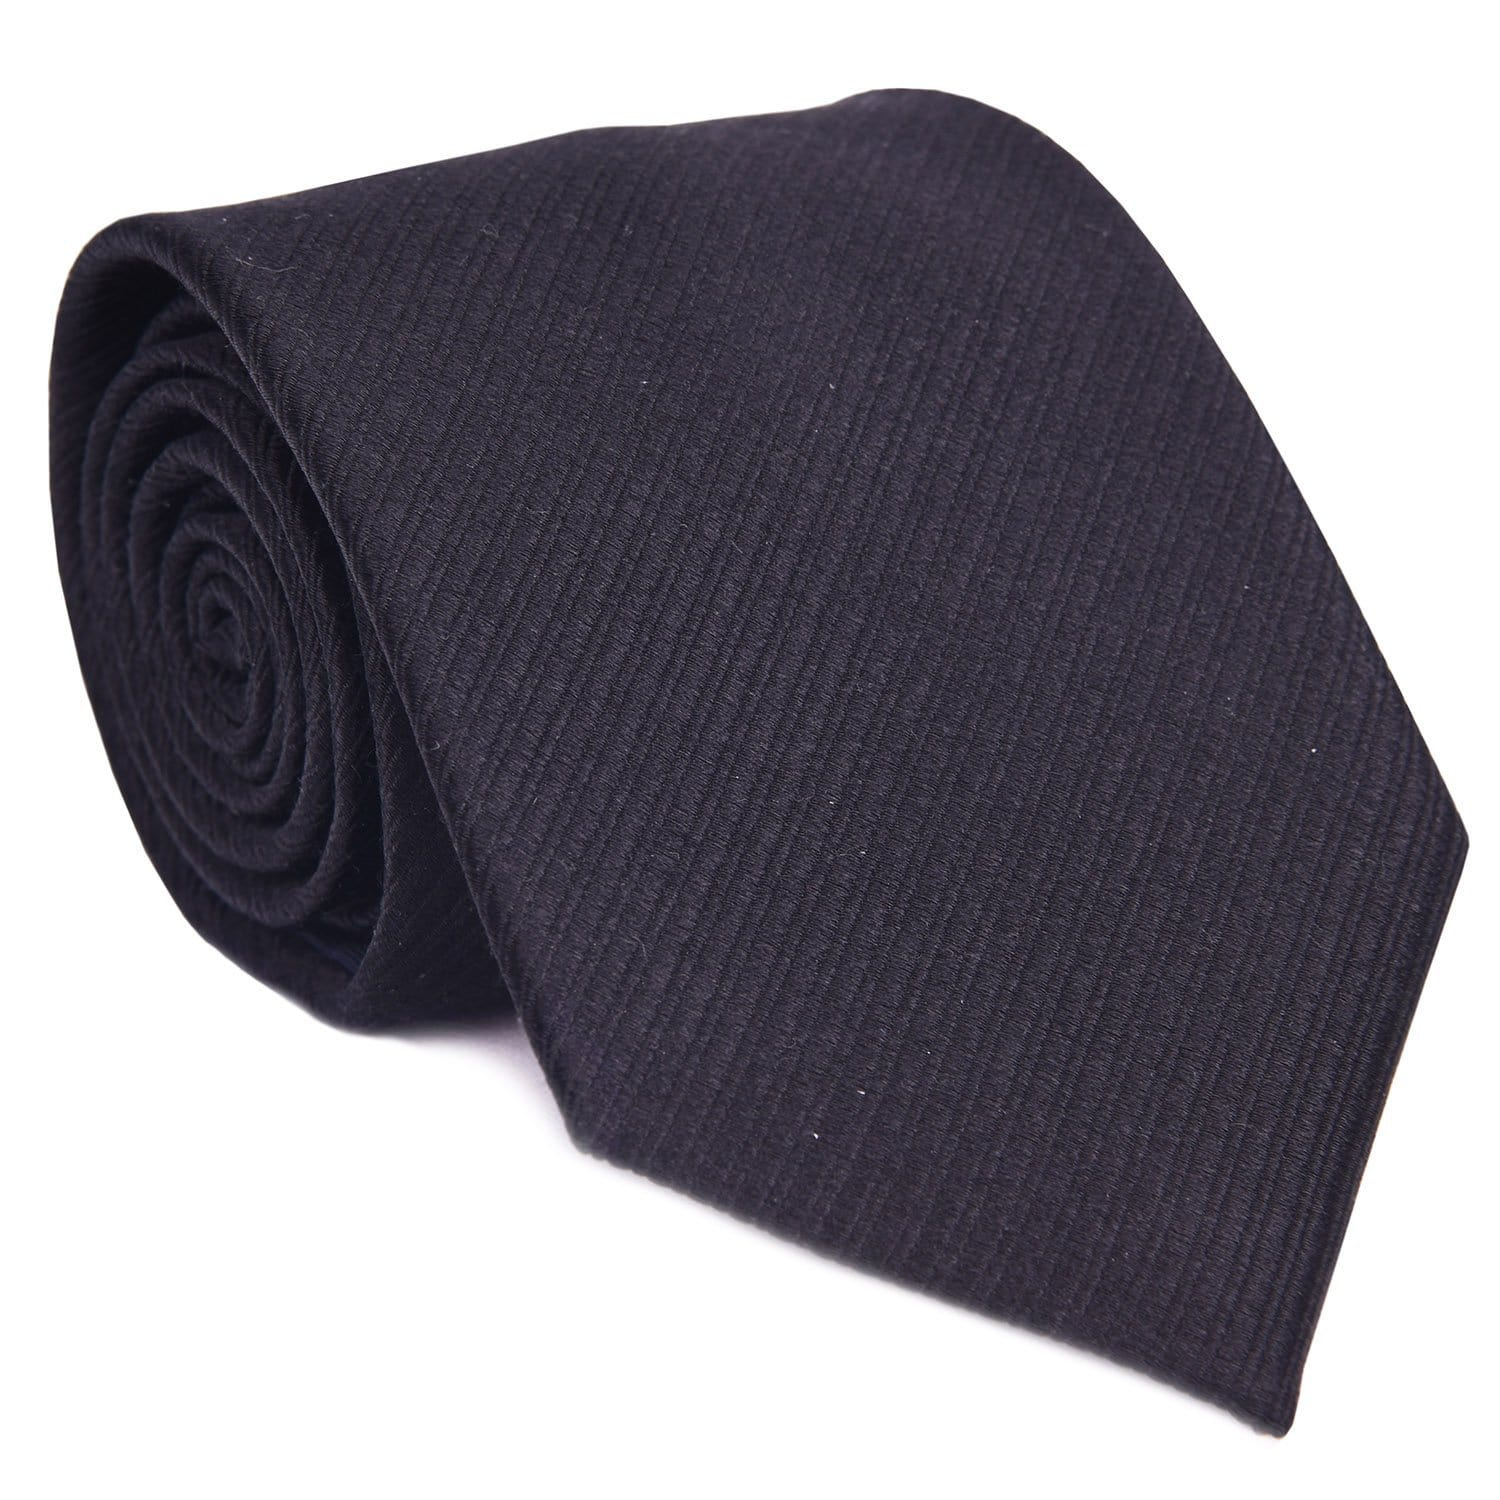 Black Formal Tone On Tone Tie - Haspel Clothing